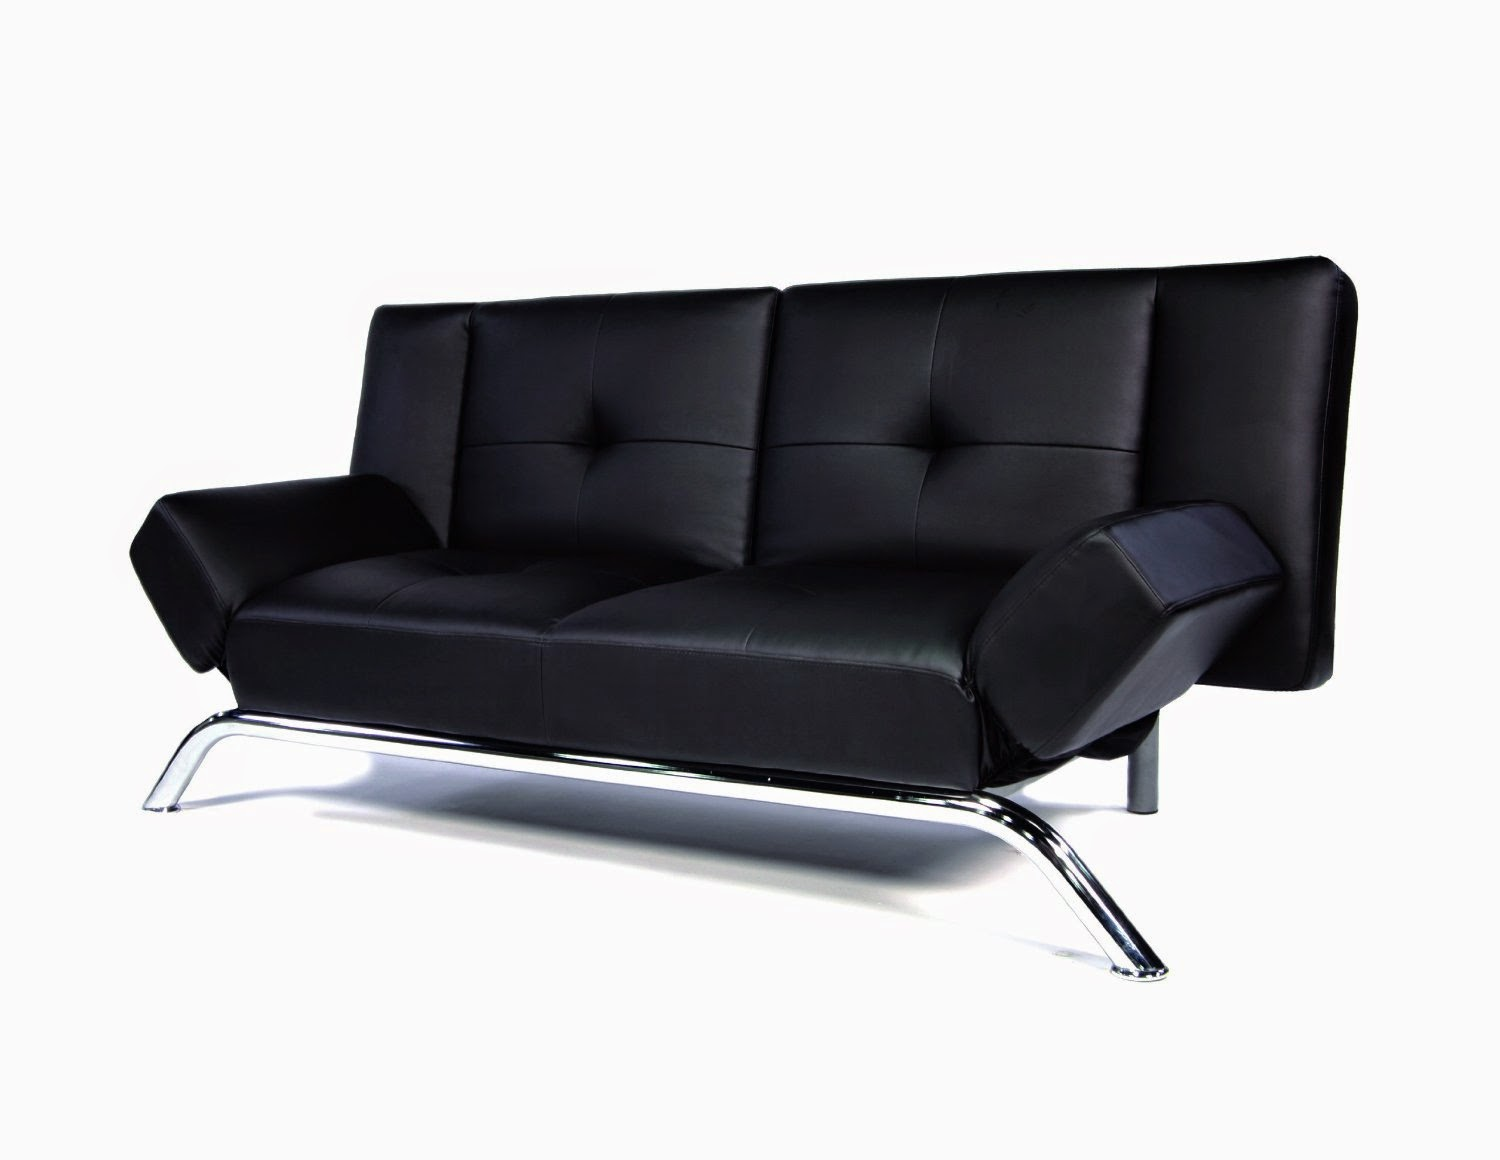 Swell Convertible Sofa Leather Html Lifestyle Solutions Harvard Bralicious Painted Fabric Chair Ideas Braliciousco